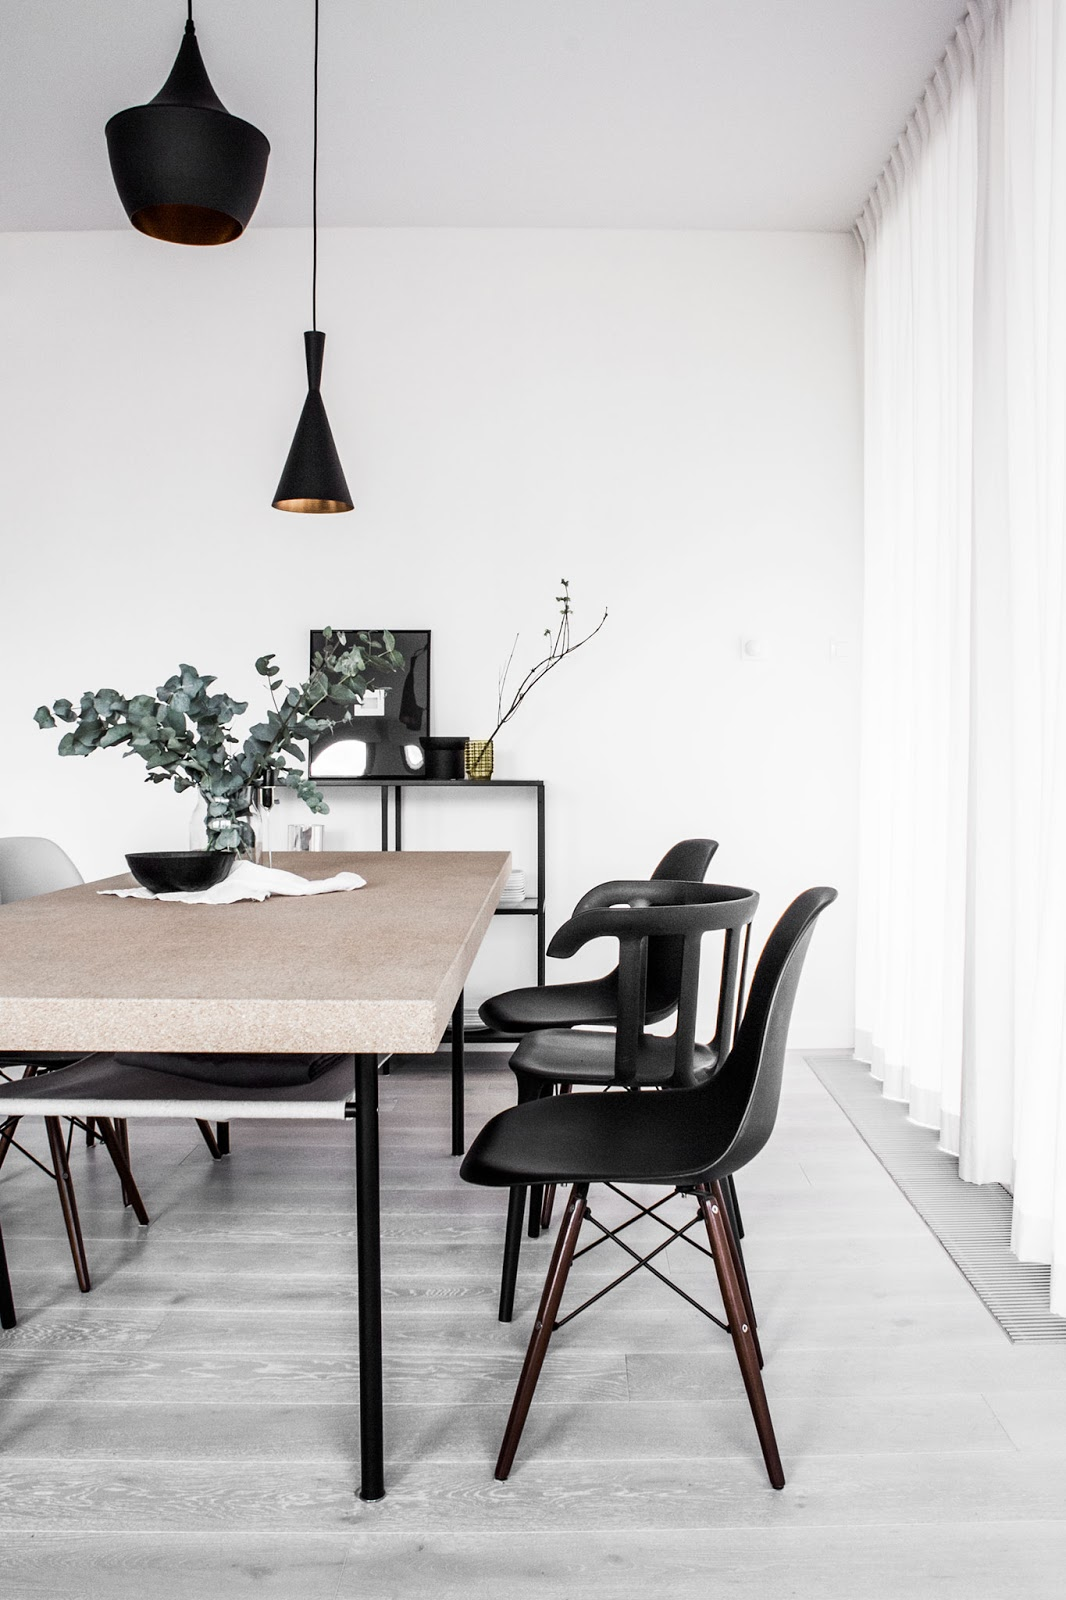 cork dining table, tom dixon lamps, black eames chair,  nordic interior